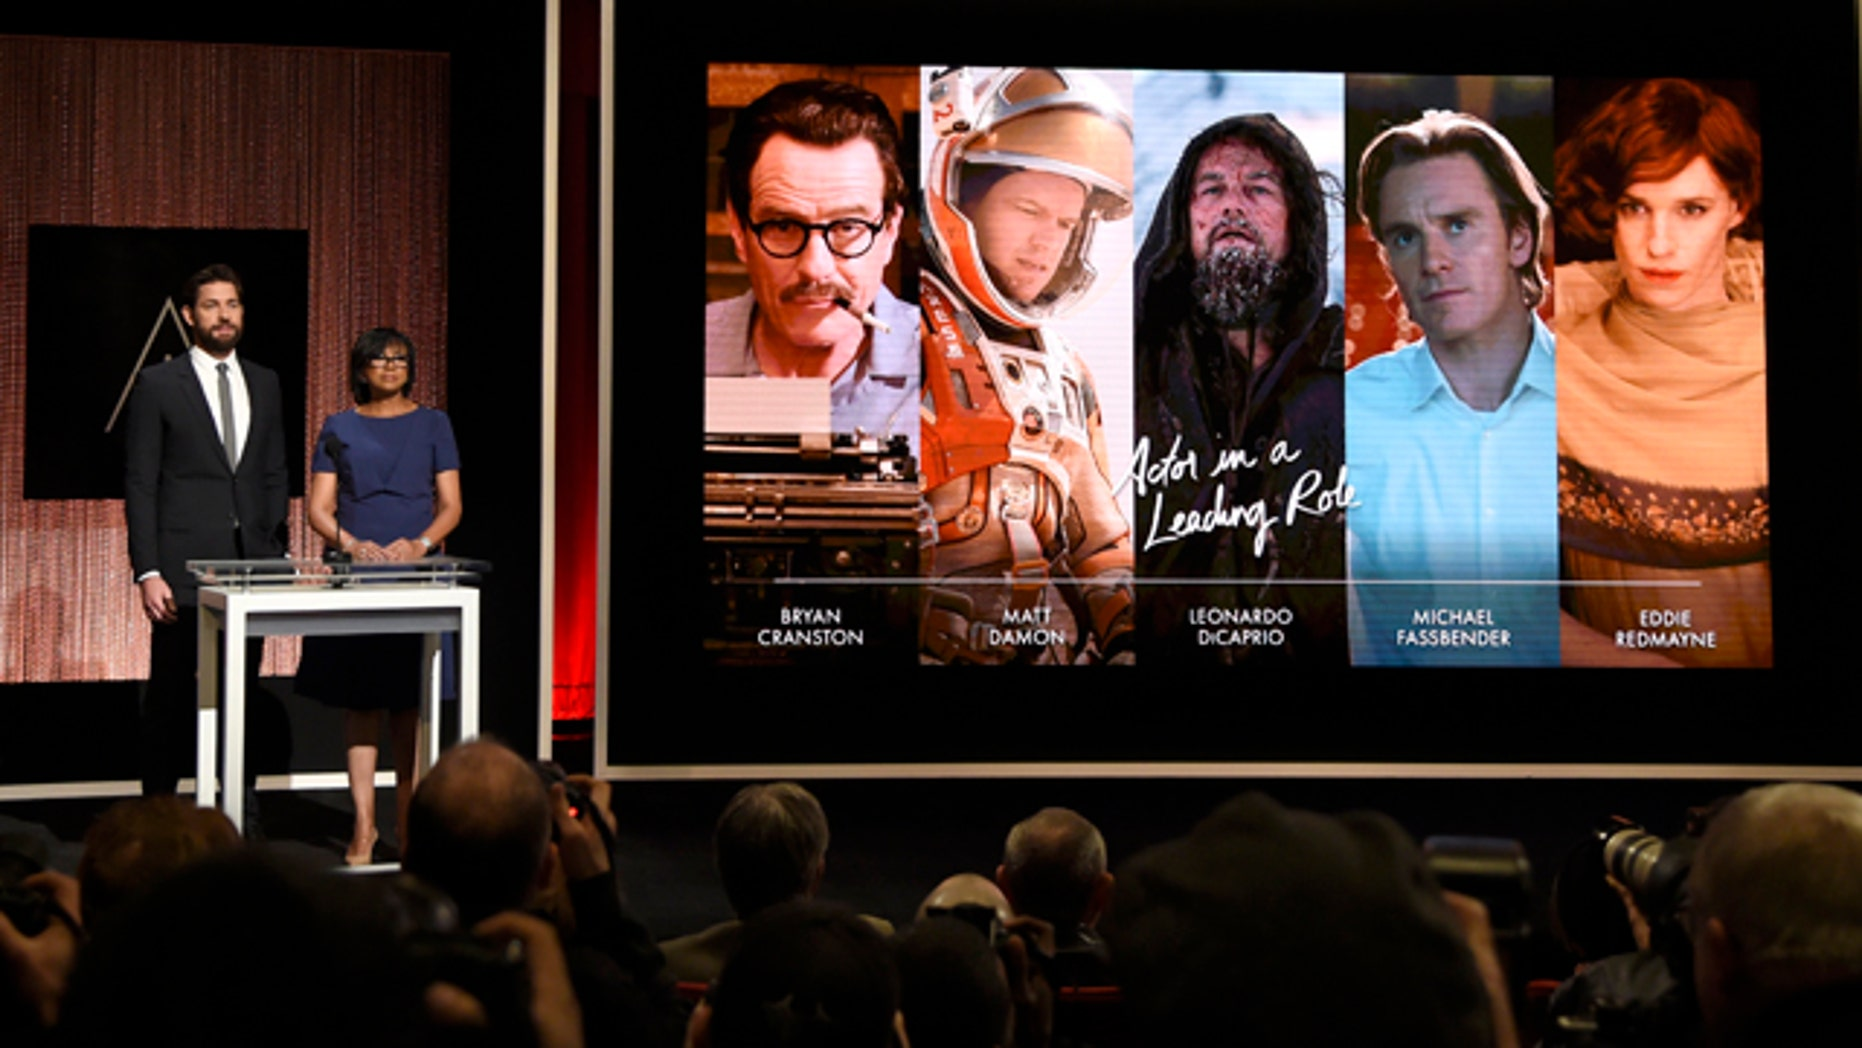 Jan. 14, 2016. John Krasinski, left, and Academy President Cheryl Boone Isaacs announce the Academy Awards nominations for best performance by an actor in a leading role at the 88th Academy Awards nomination ceremony in Beverly Hills, Calif.